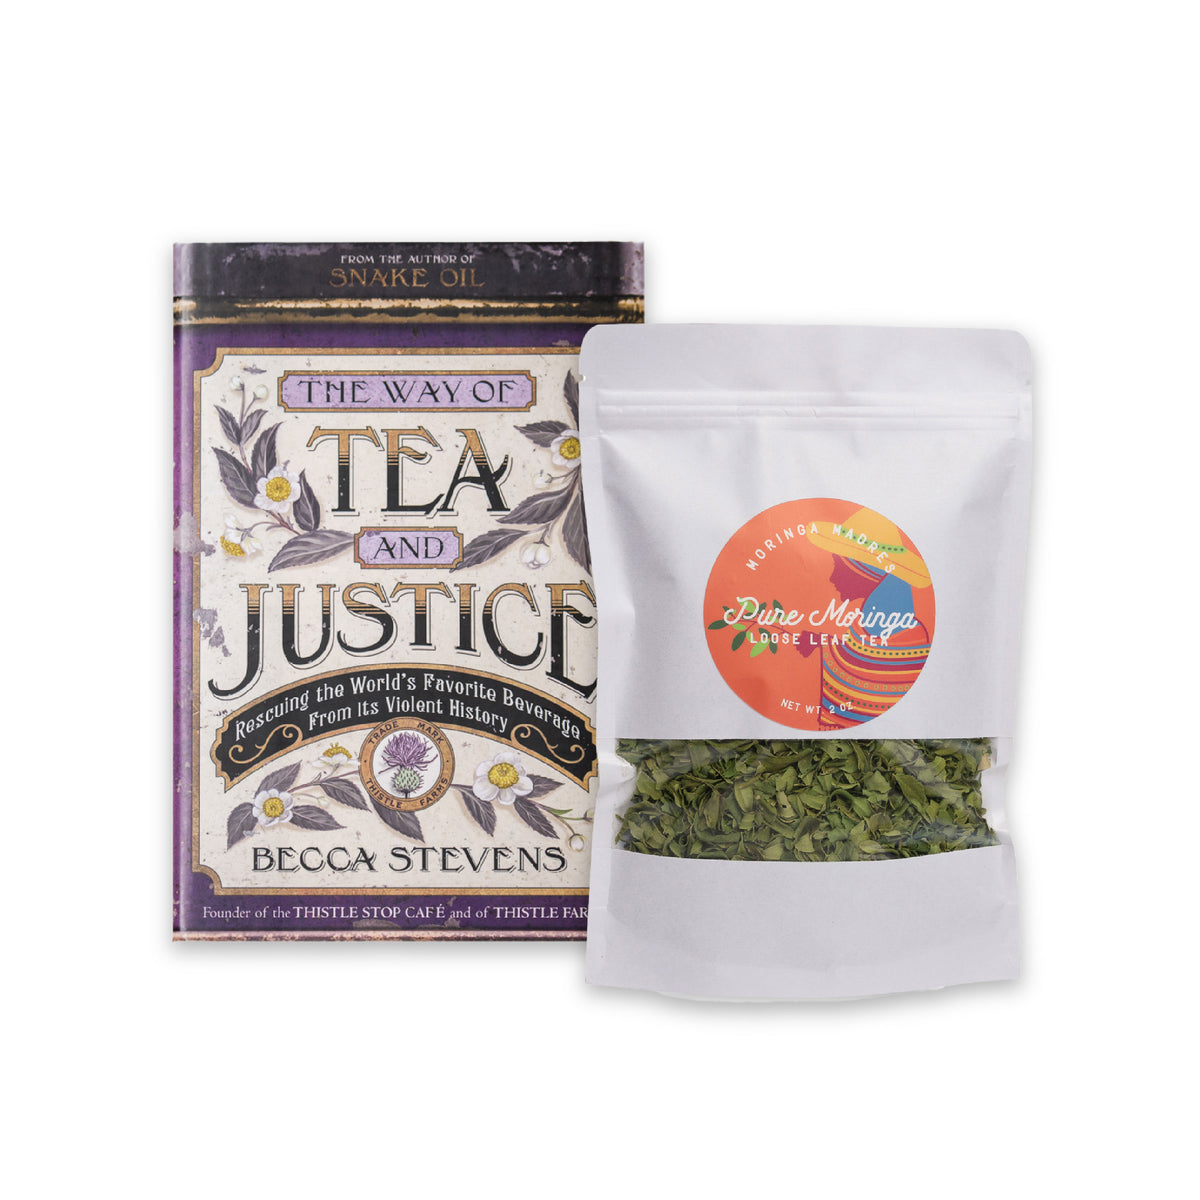 The Way of Tea and Justice Book + Moringa Tea